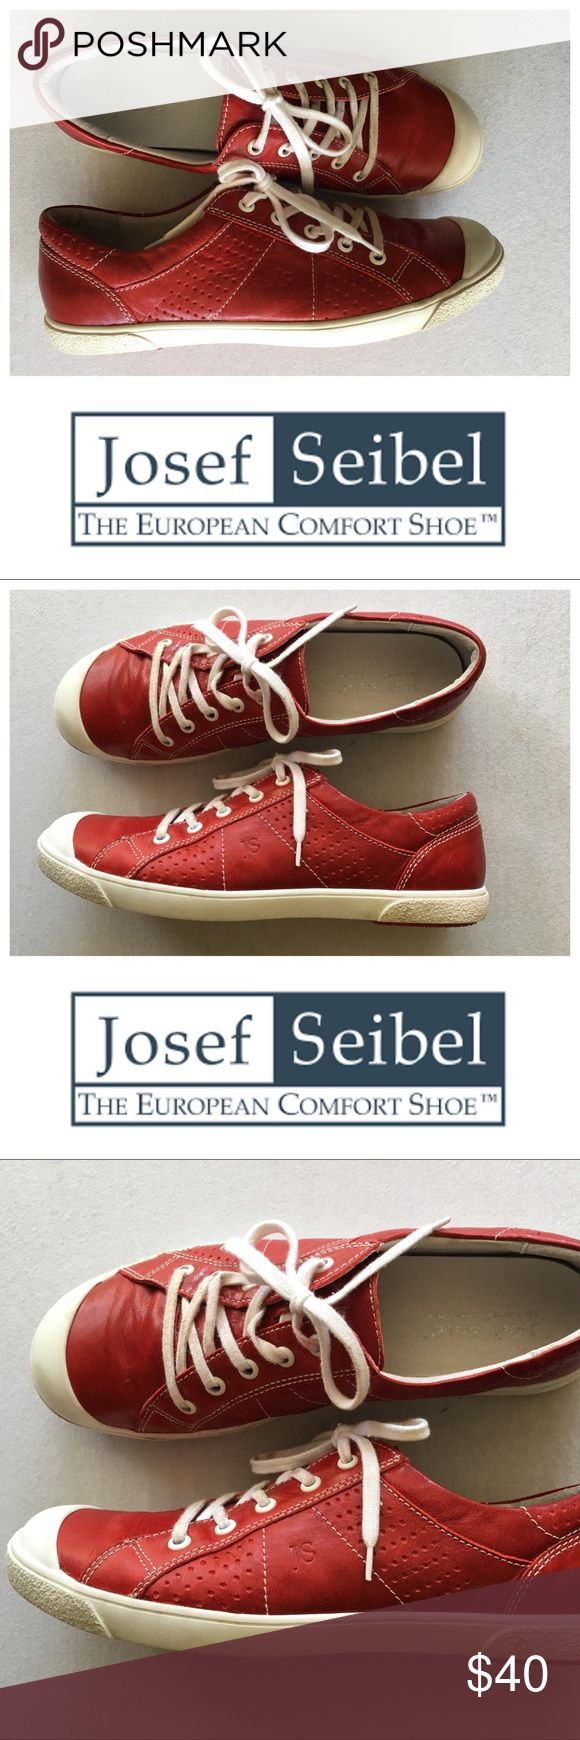 josef seibel lilo 13 red leather sneaker Euro 40 Josef Seibel's Lilo 13 sneakers are made from buttery-smooth leather w/sporty lace-up look & a retro-chic toe bumper for unmatched comfort that doesn't disappoint on style. Shoes are handstitched for increased flexibility, wear & artisan good looks Perforated leather upper w/sporty lace-up style & rubber toe bumper Breathable Airped® removable leather footbed is deeply cushioned for comfort Slip-resistant grooved rubber outsole Very good…